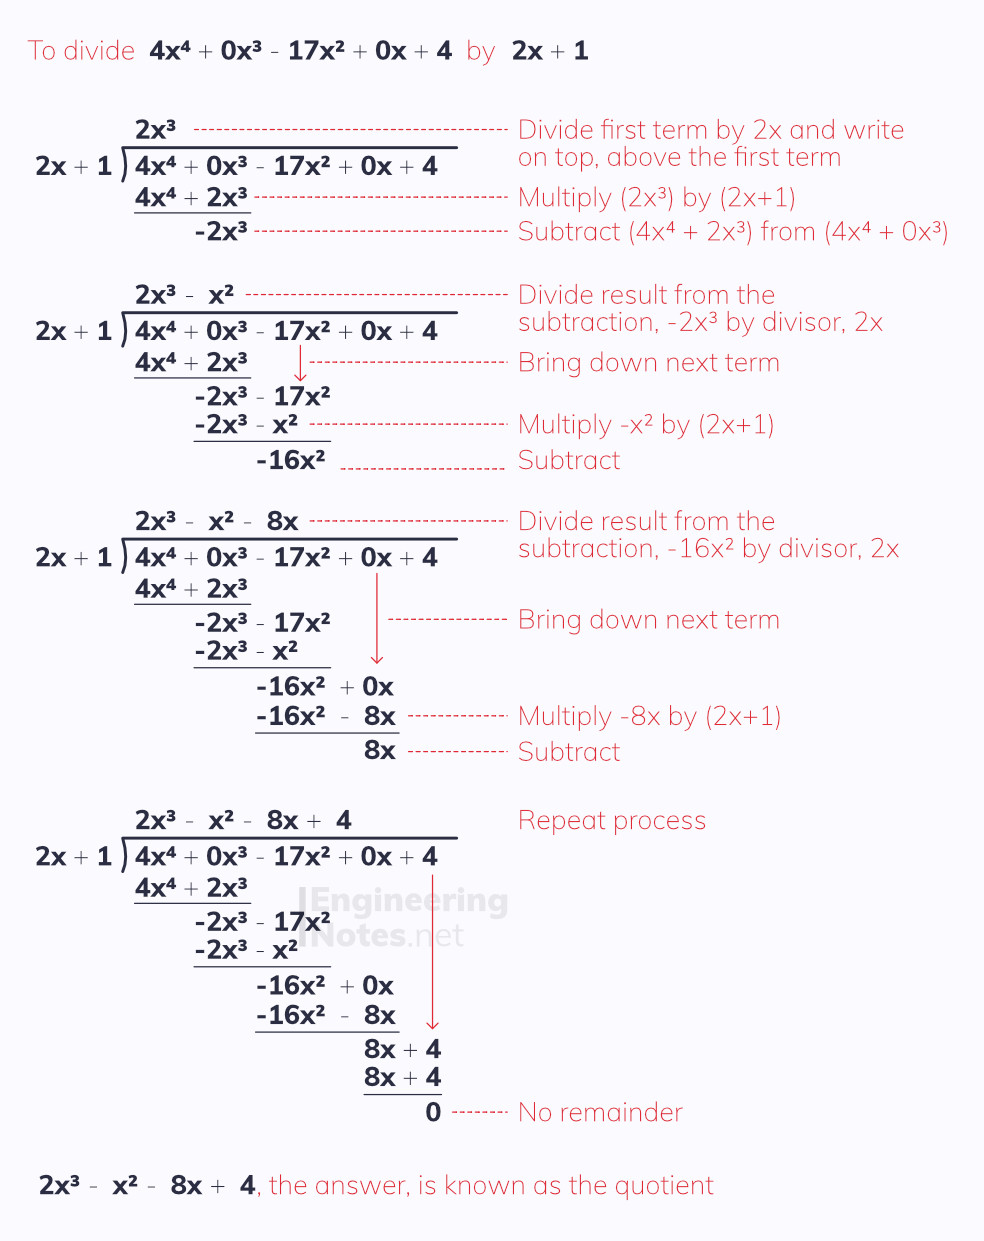 Algebraic long division of polynomials tutorial. A-Level Maths. EngineeringNotes.net, EngineeringNotes, Engineering Notes